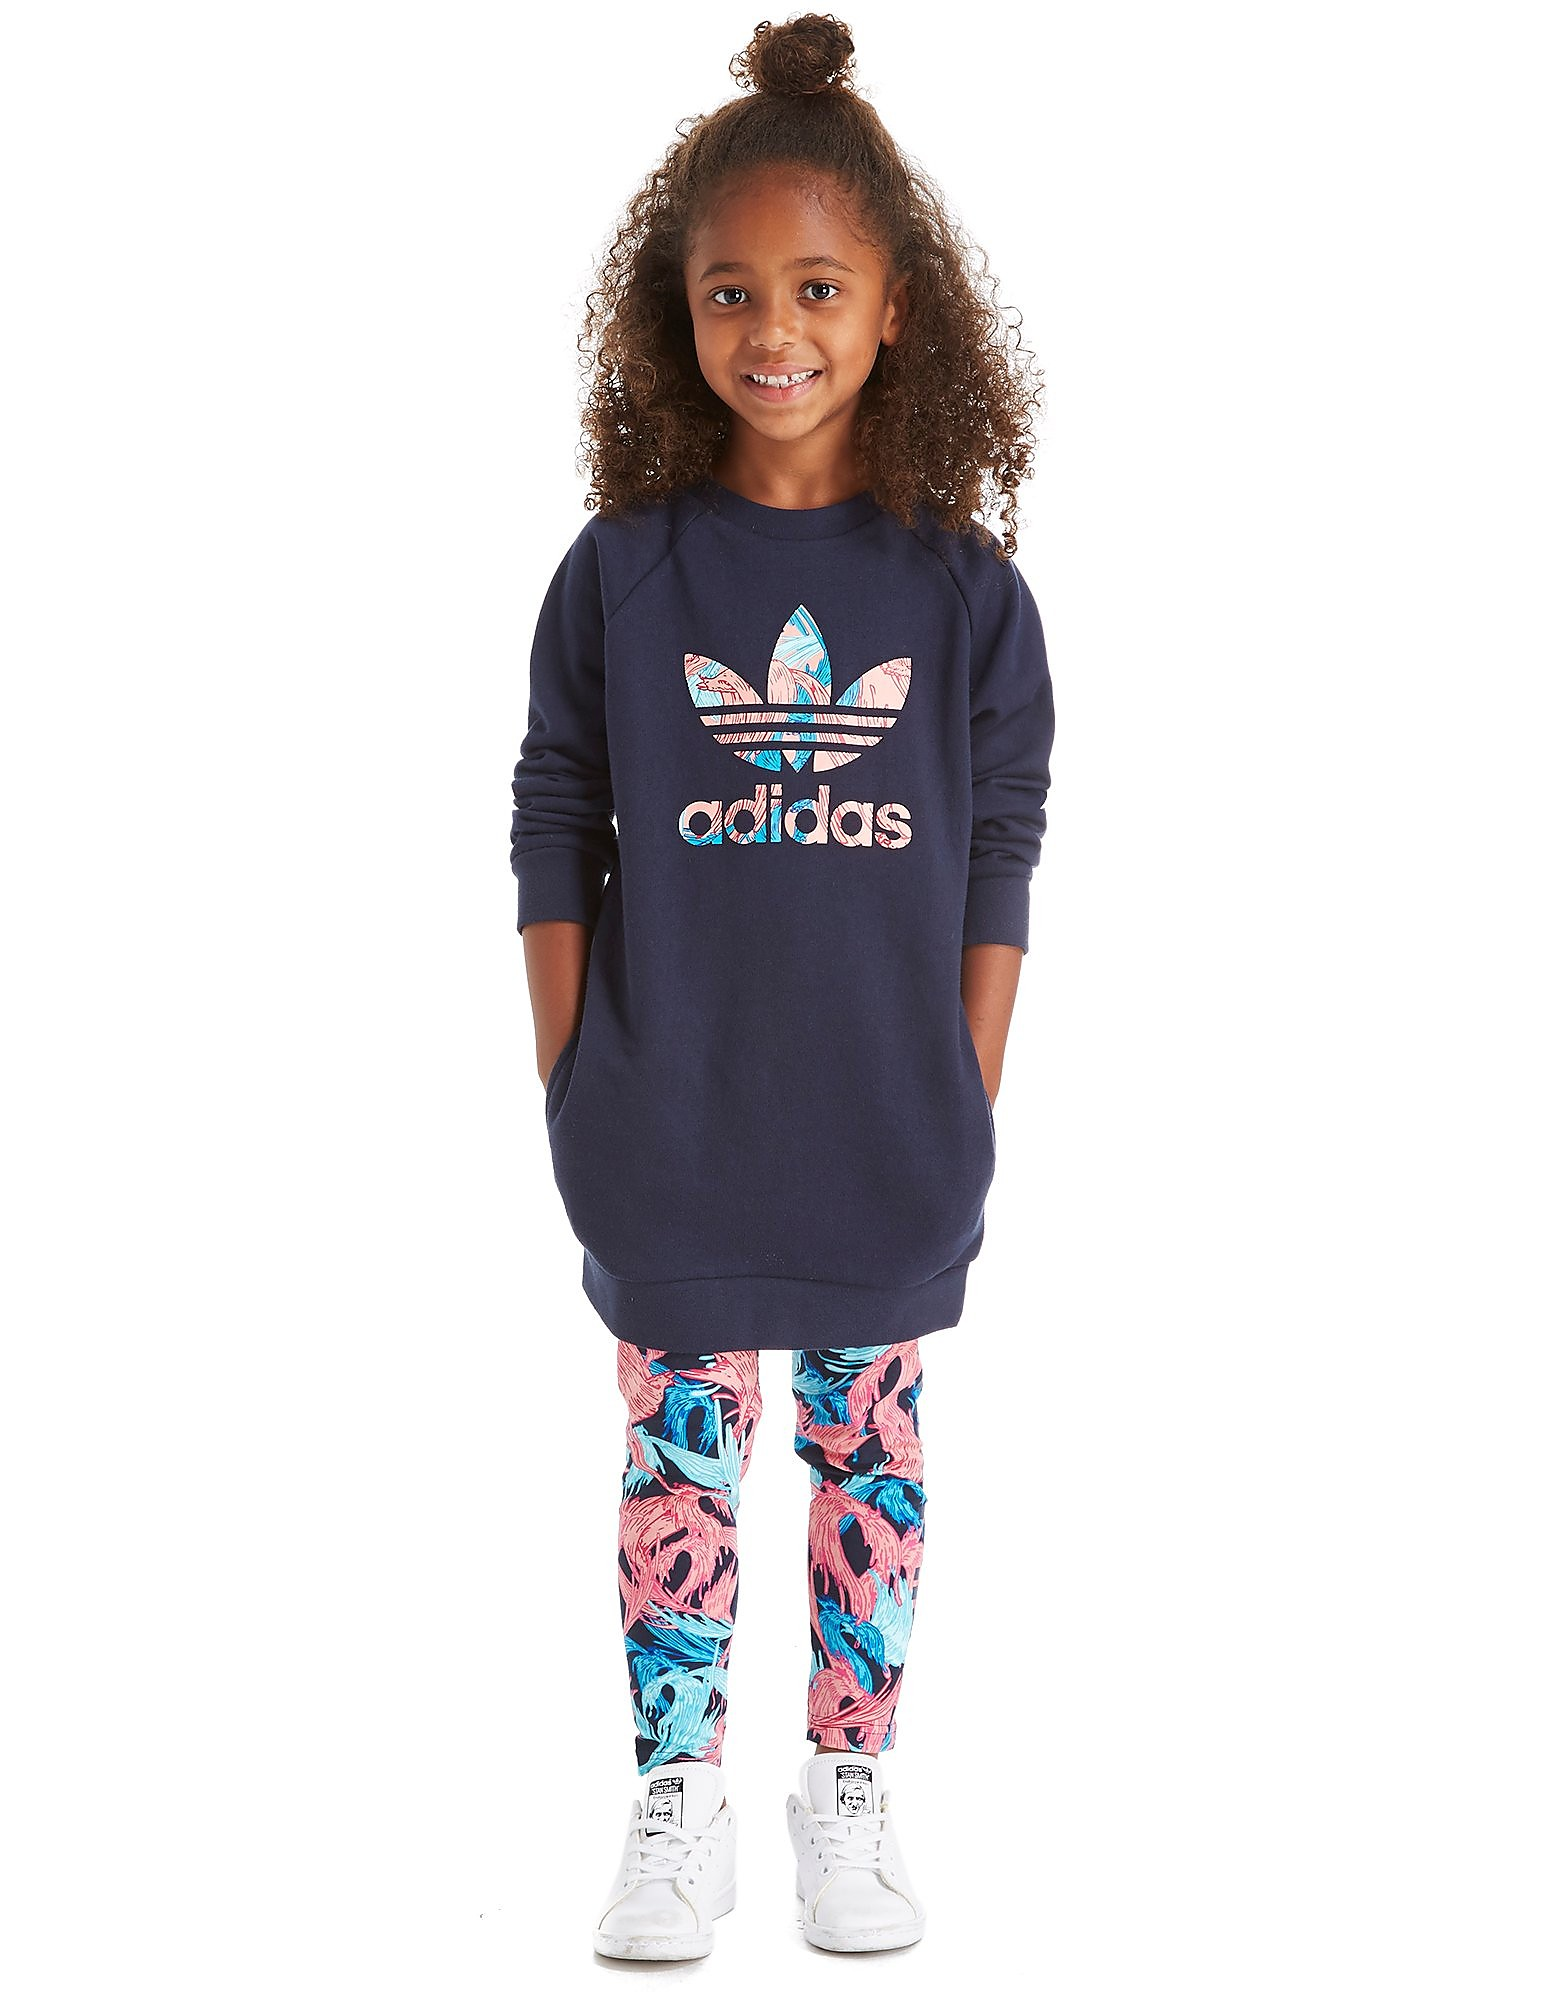 adidas Originals Girls' Feather Crew Set Children